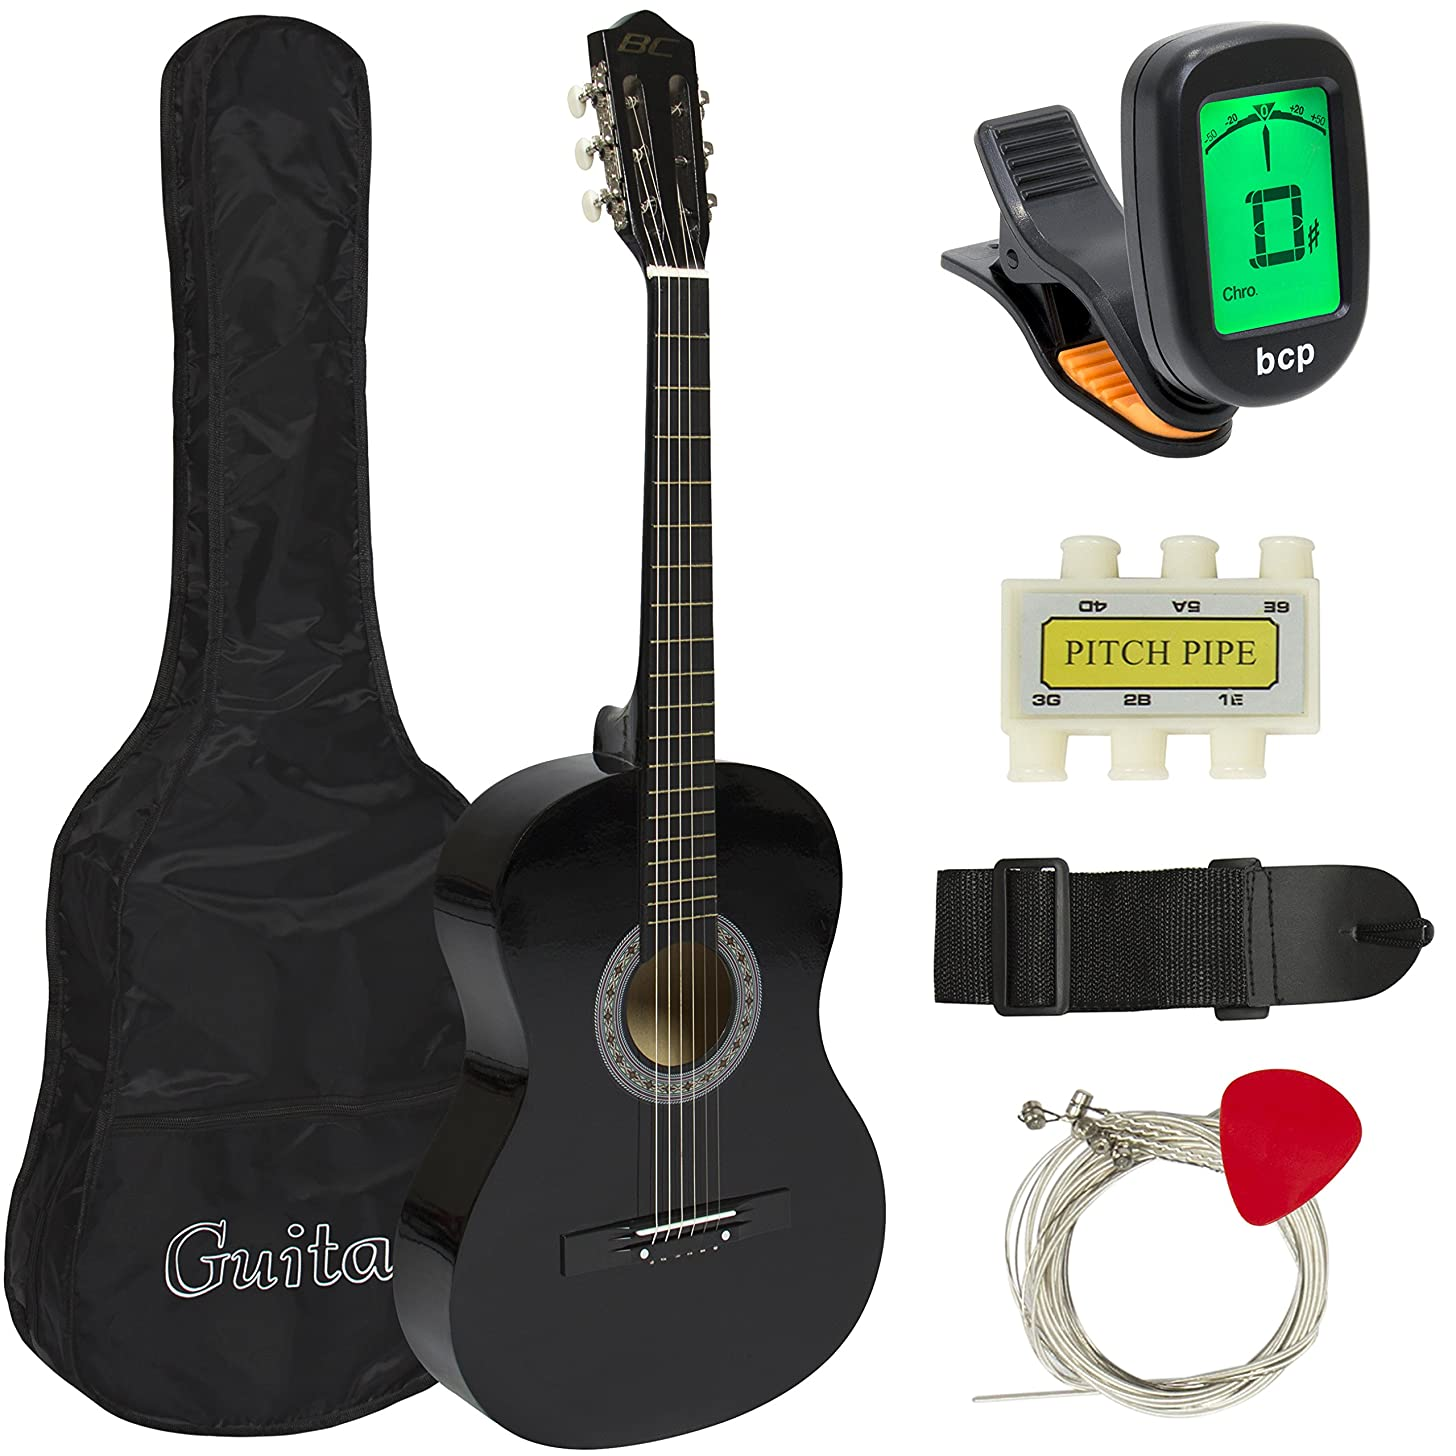 Best Choice Products 38in Beginner Acoustic Guitar Kit w/Case, Strap, Digital E-Tuner, Pick, Pitch Pipe, Strings (Black + Capo SIlver)